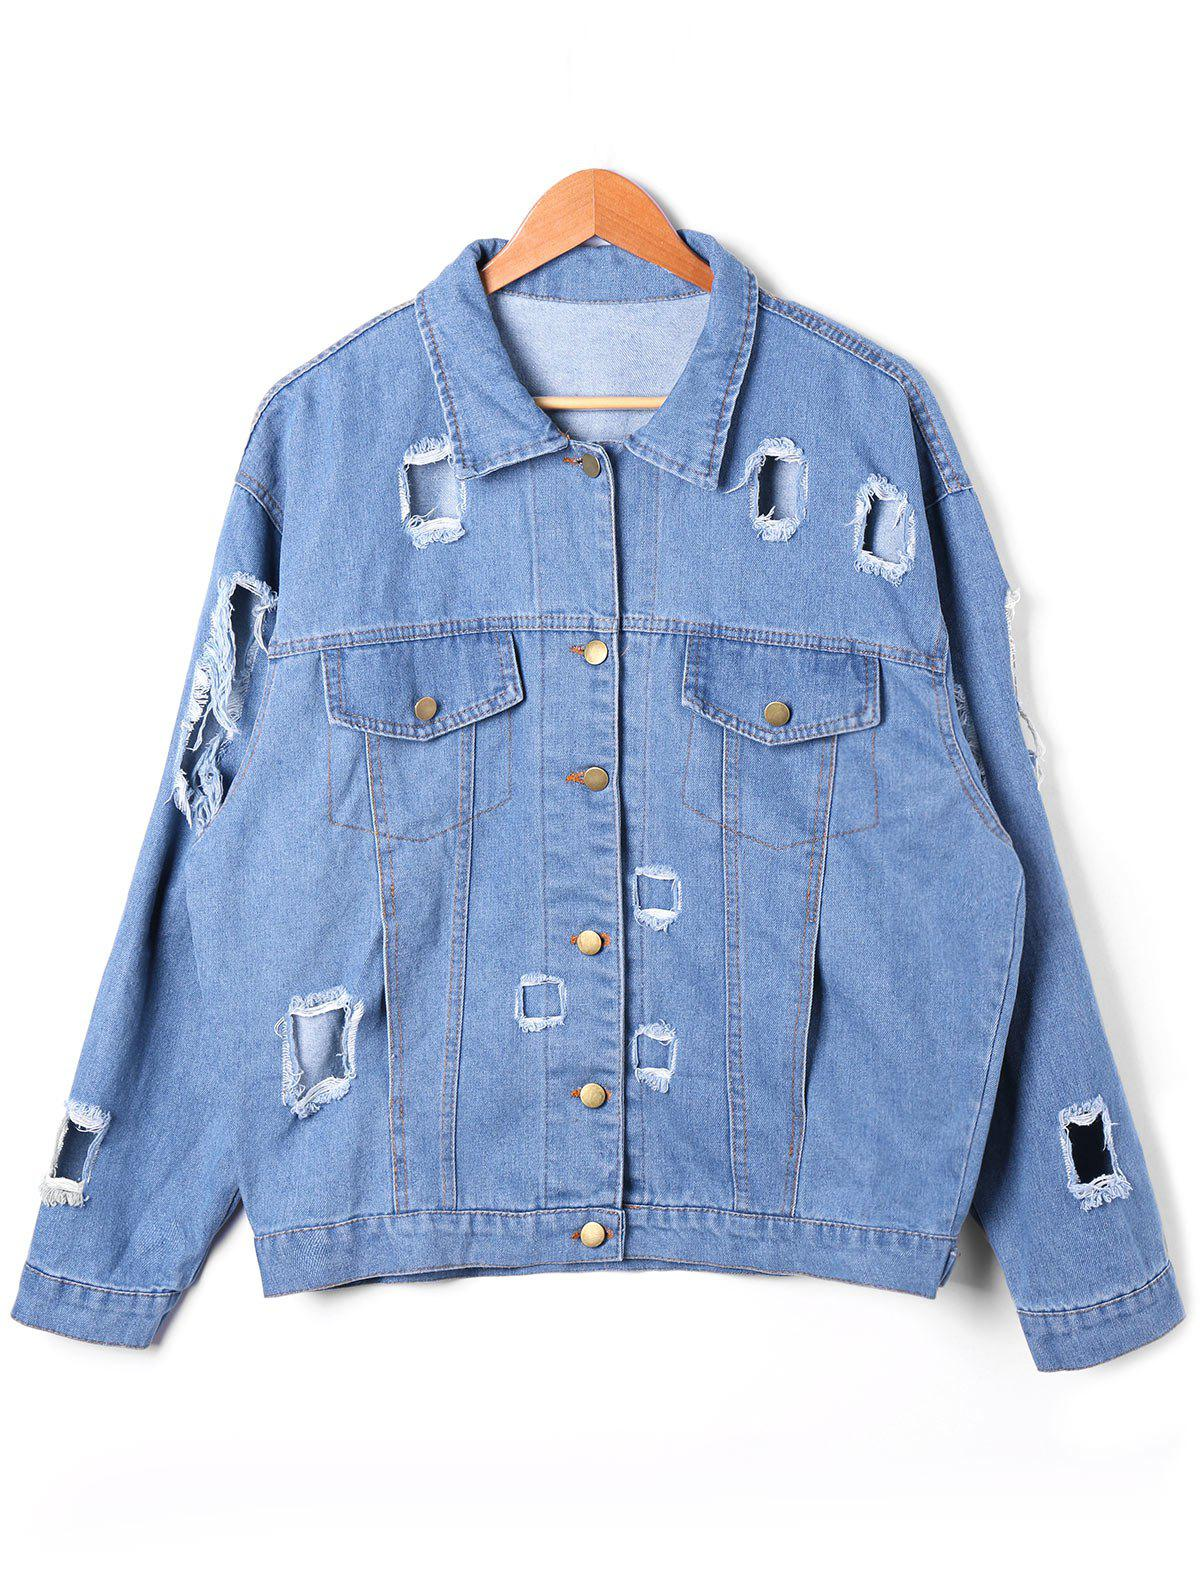 Flap Pockets Destroyed Denim Jacket - DENIM BLUE M